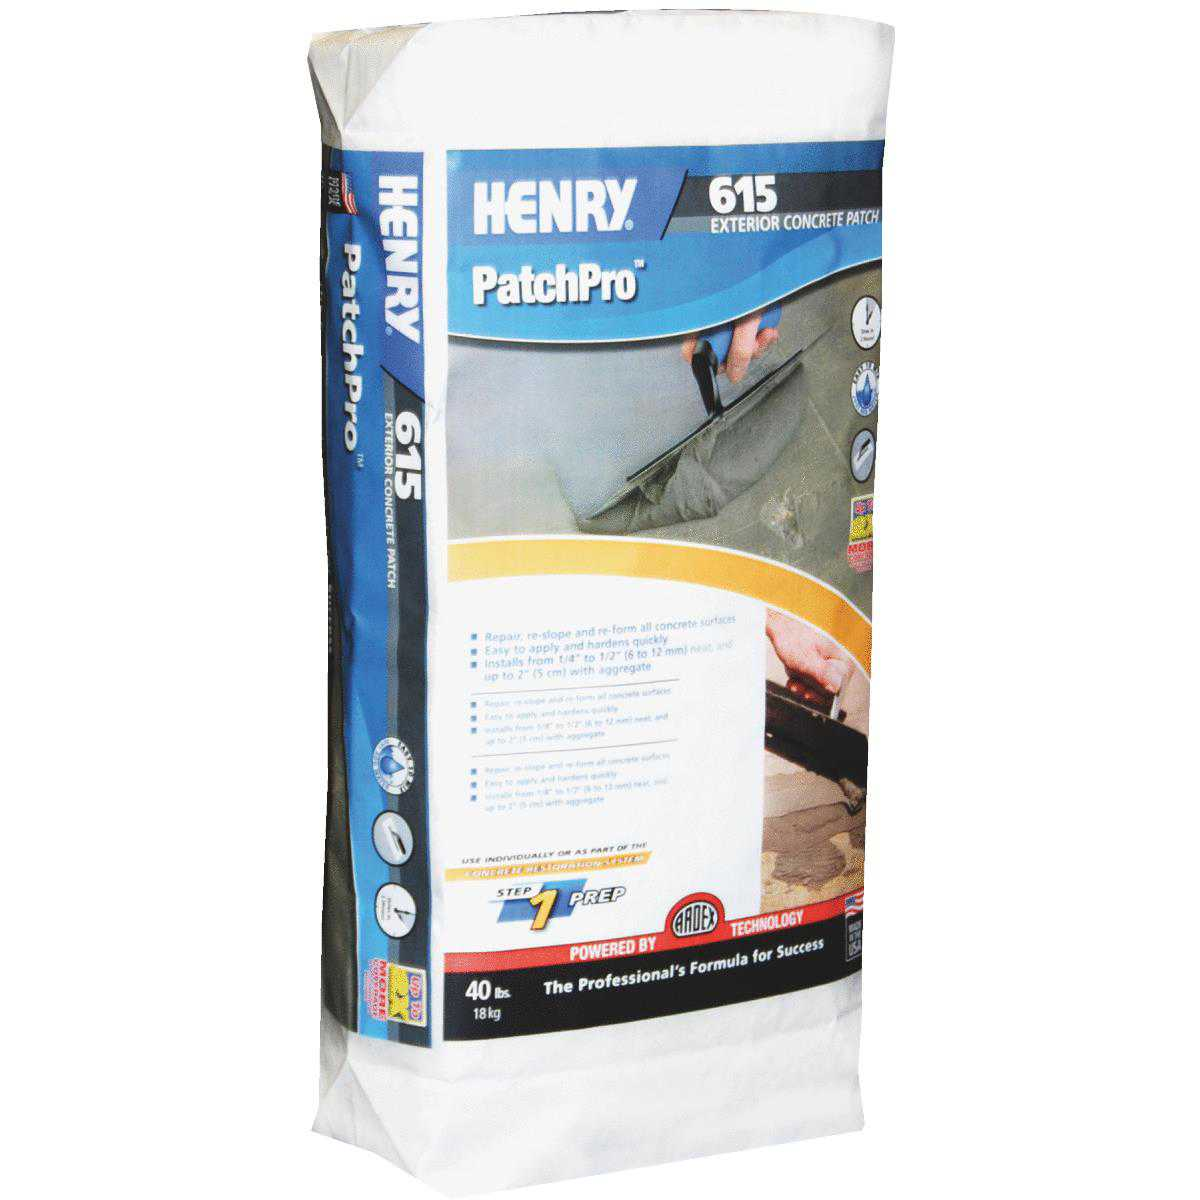 Henry PatchPro Concrete Patch